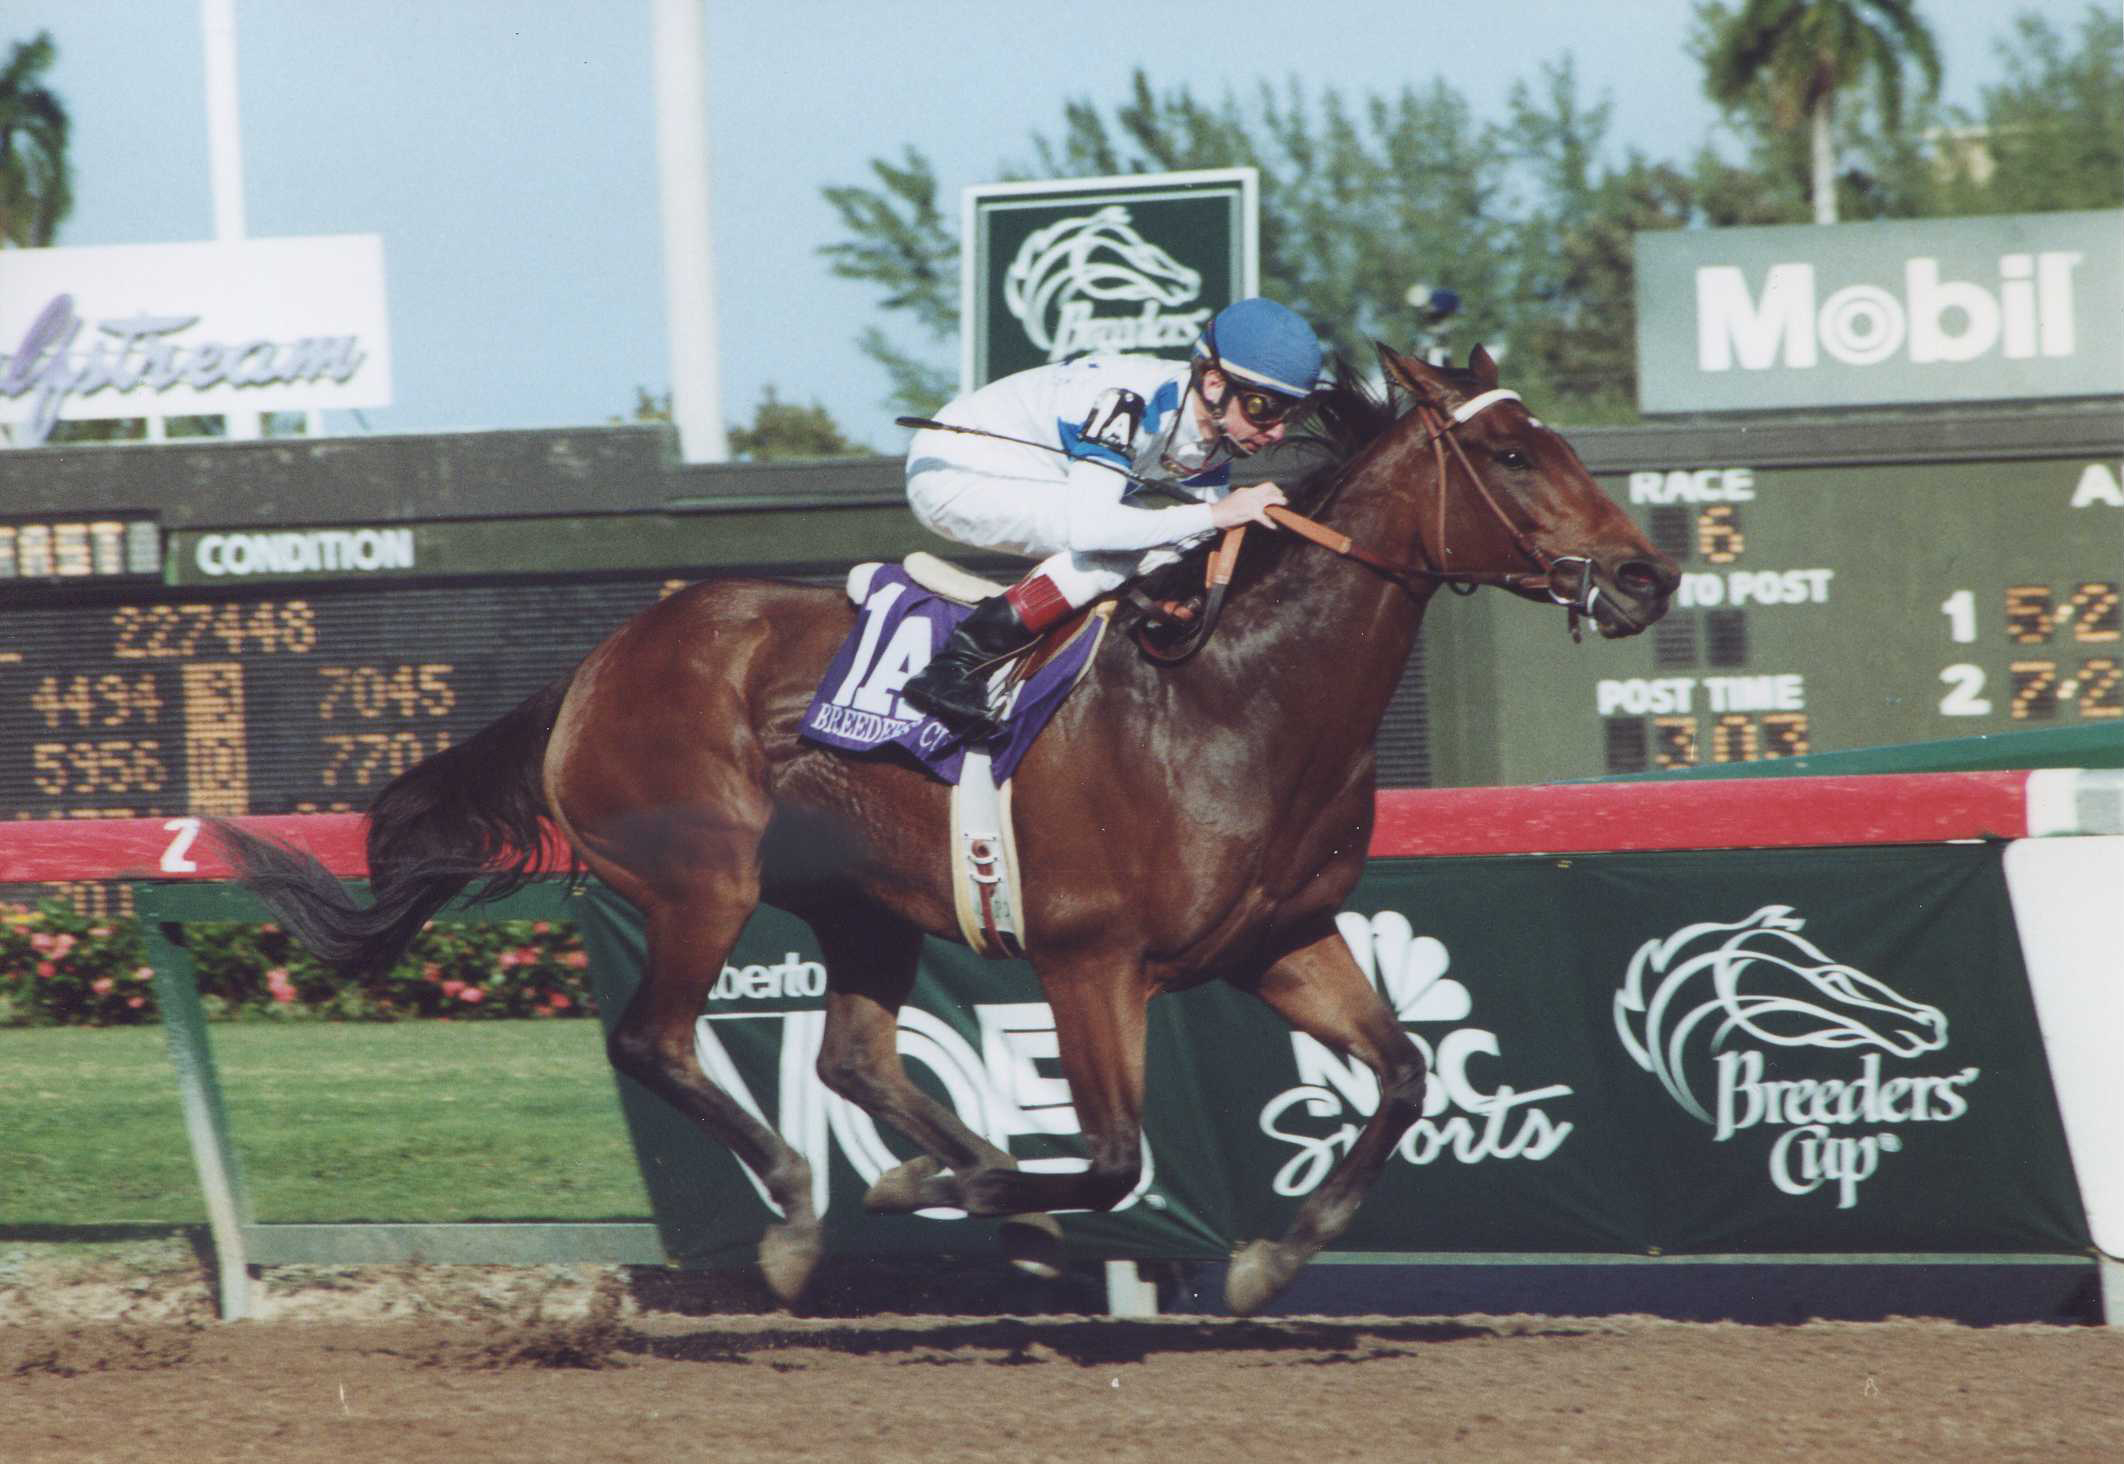 Paseana (Chris McCarron up) winning the 1992 Breeders' Cup Distaff at Gulfstream Park (Barbara D. Livingston/Museum Collection)